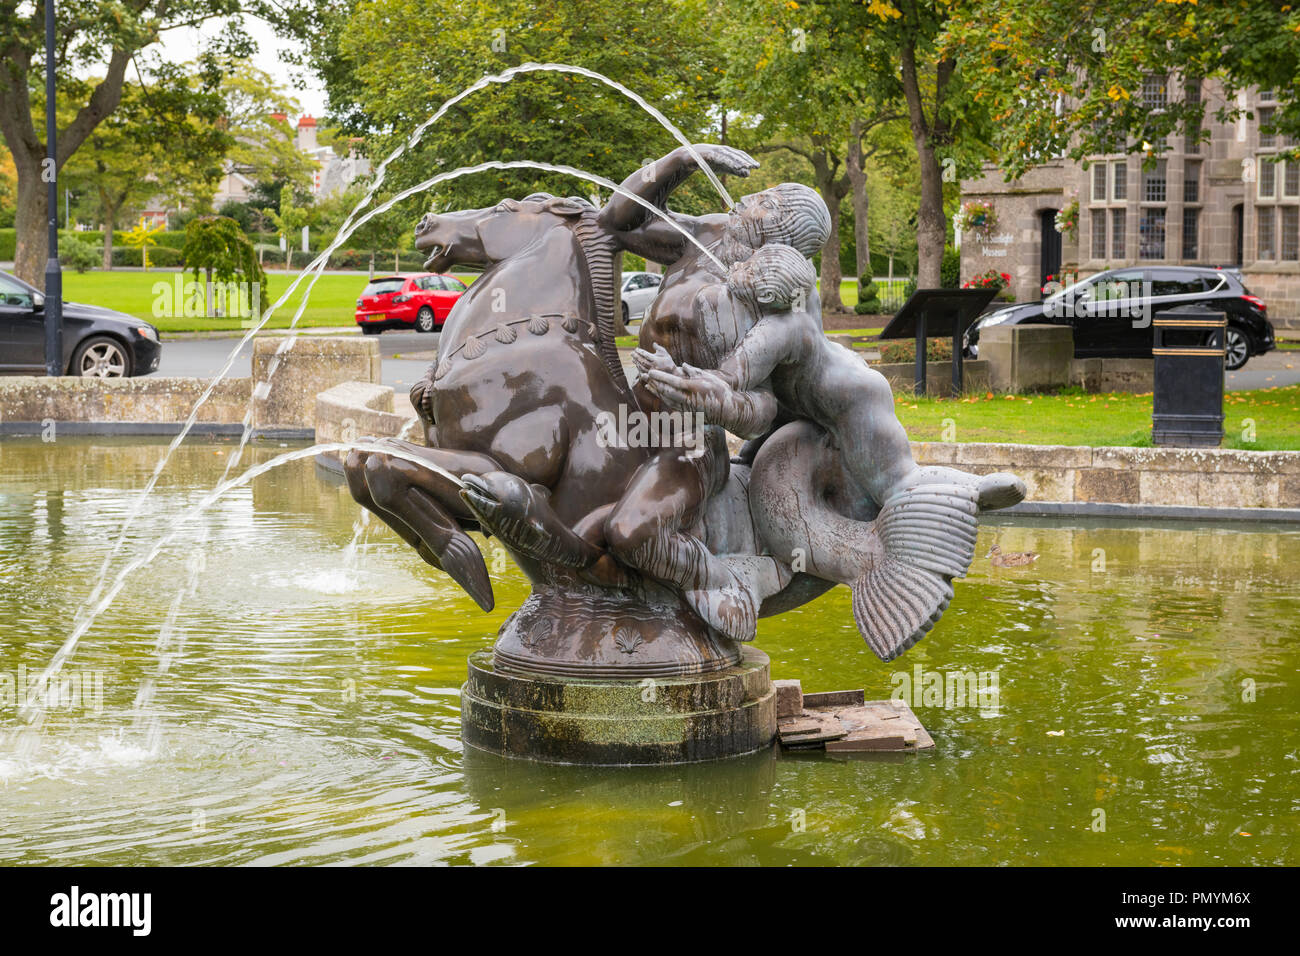 Liverpool Wirral Port Sunlight Village bronze water feature fountain Sea Spirit bronze sculpture statue by Charles Wheeler 1950 sea horse fish - Stock Image